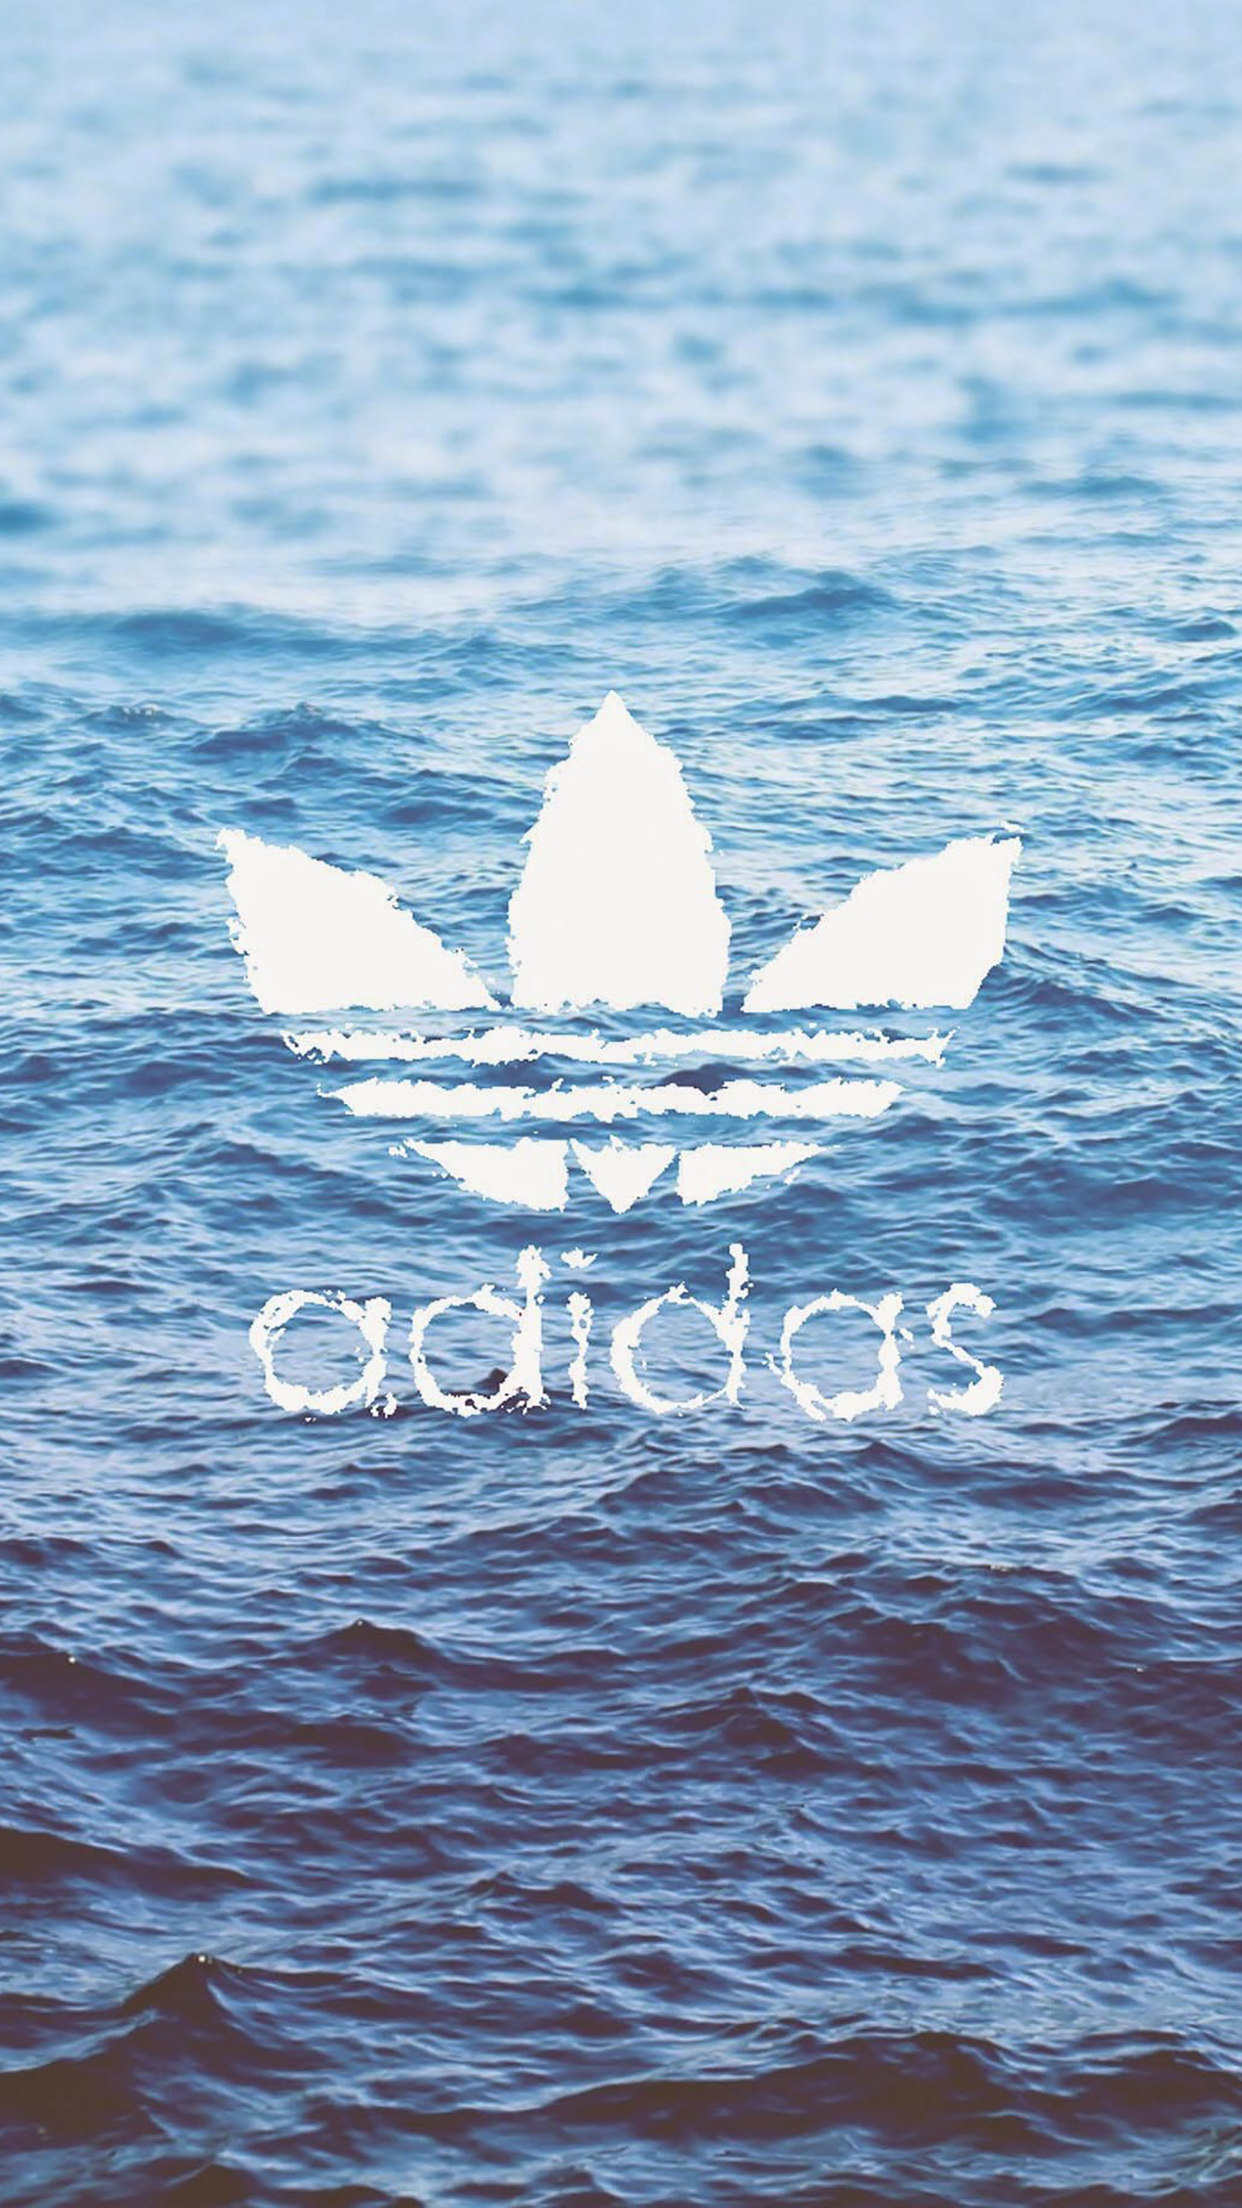 Nike Wallpaper Iphone 6s Adidas Logo On Water Wallpaper For Iphone X 8 7 6